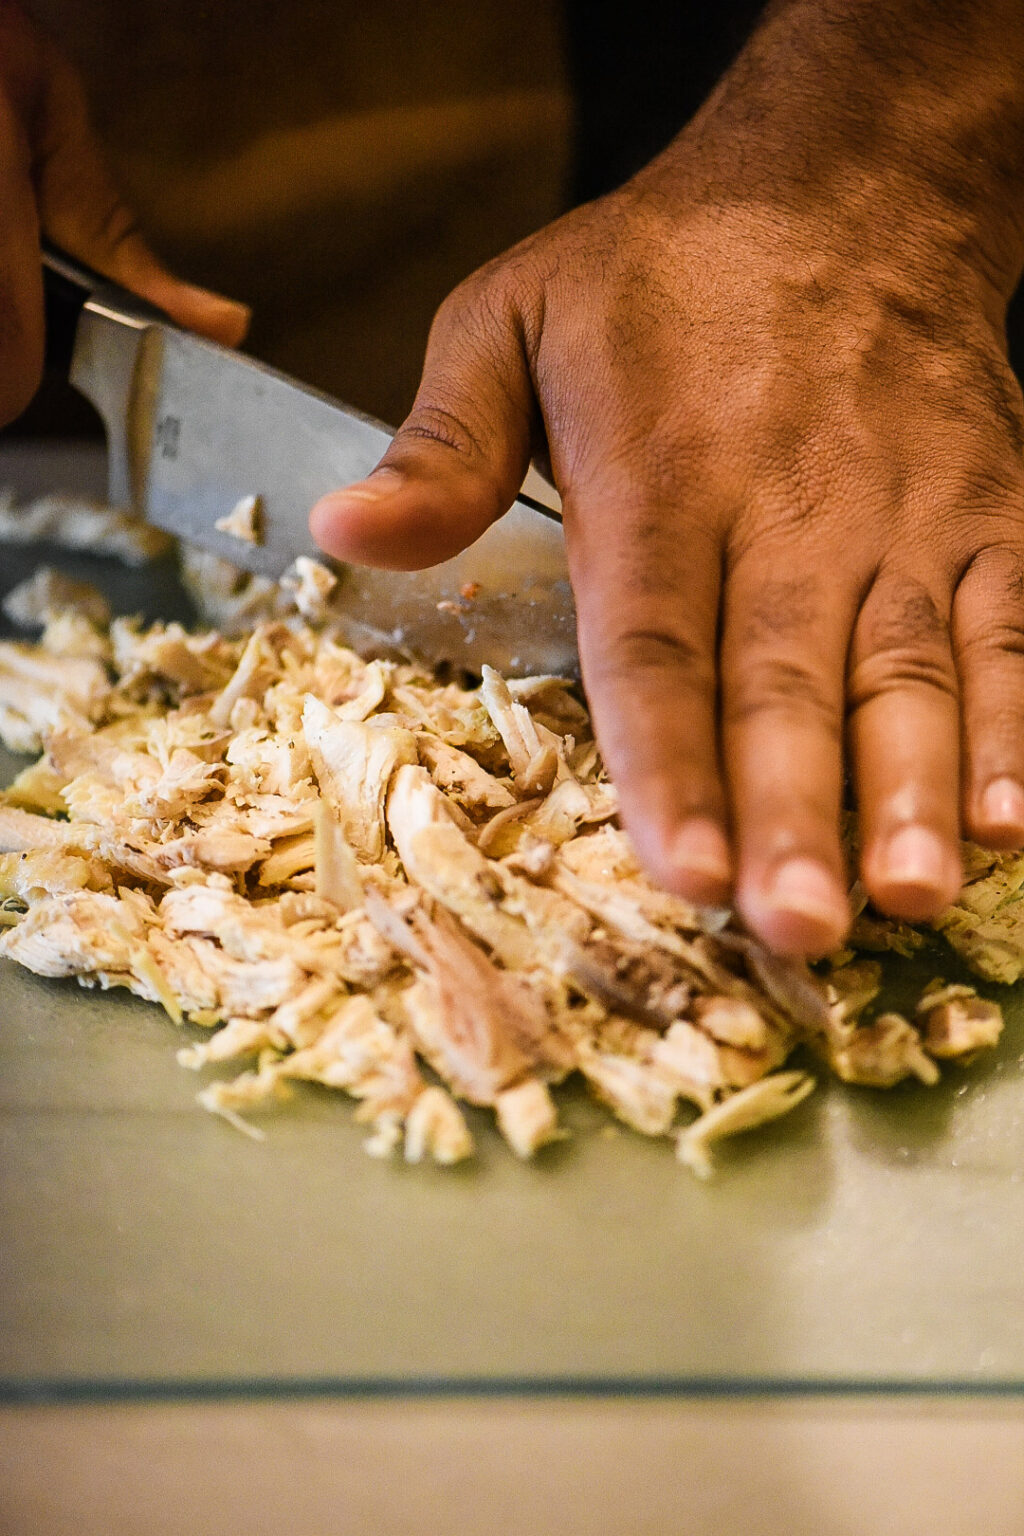 Cutting shredded chicken